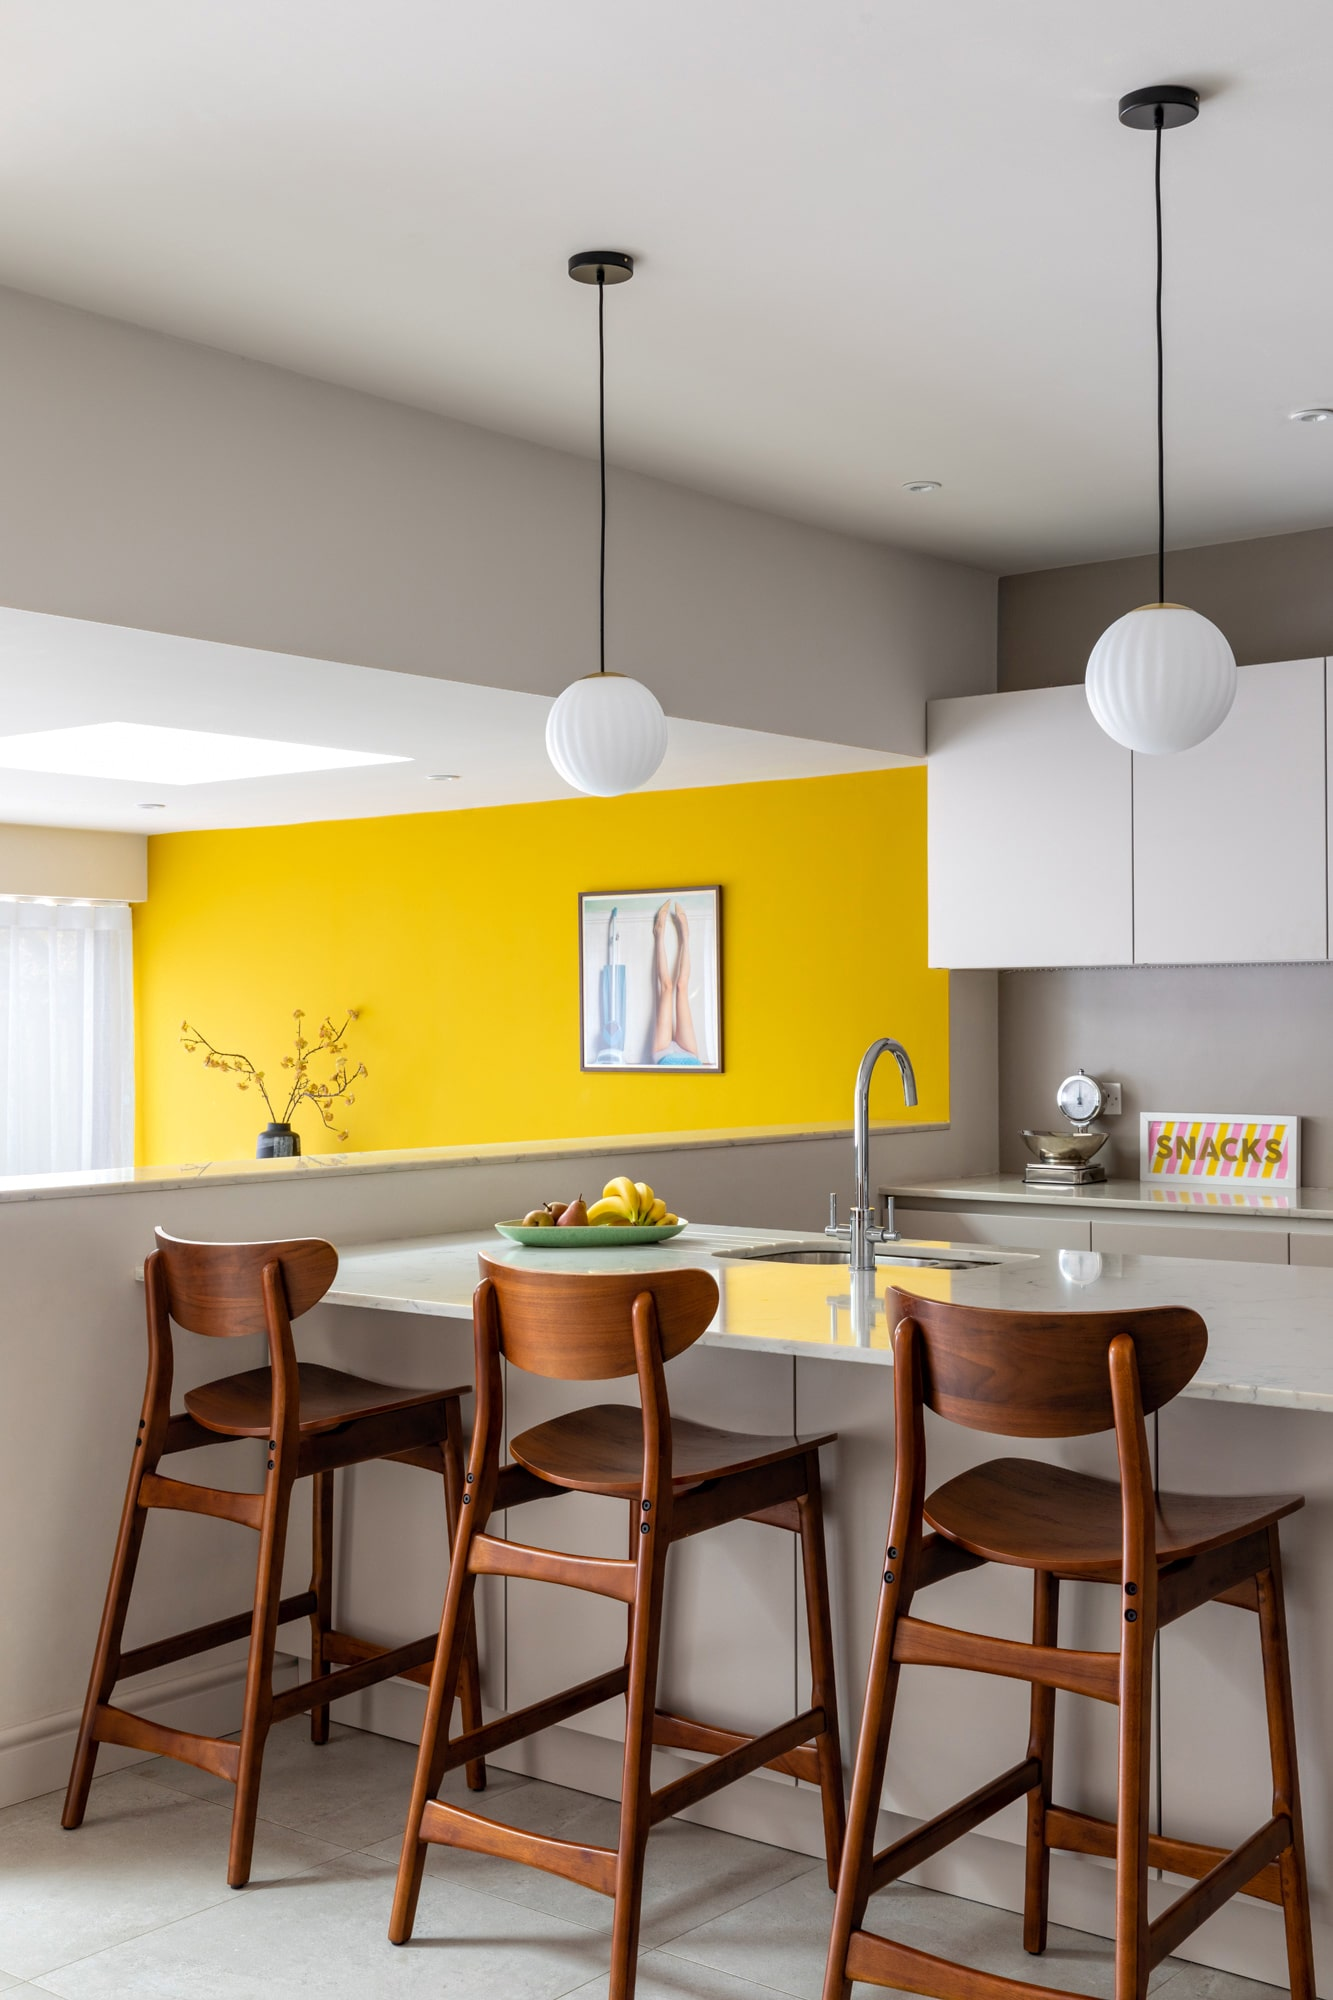 Interior design photo: a view on a white kitchen with white stone worktop, three wooden chairs and a yellow wall on the left side of the kitchen